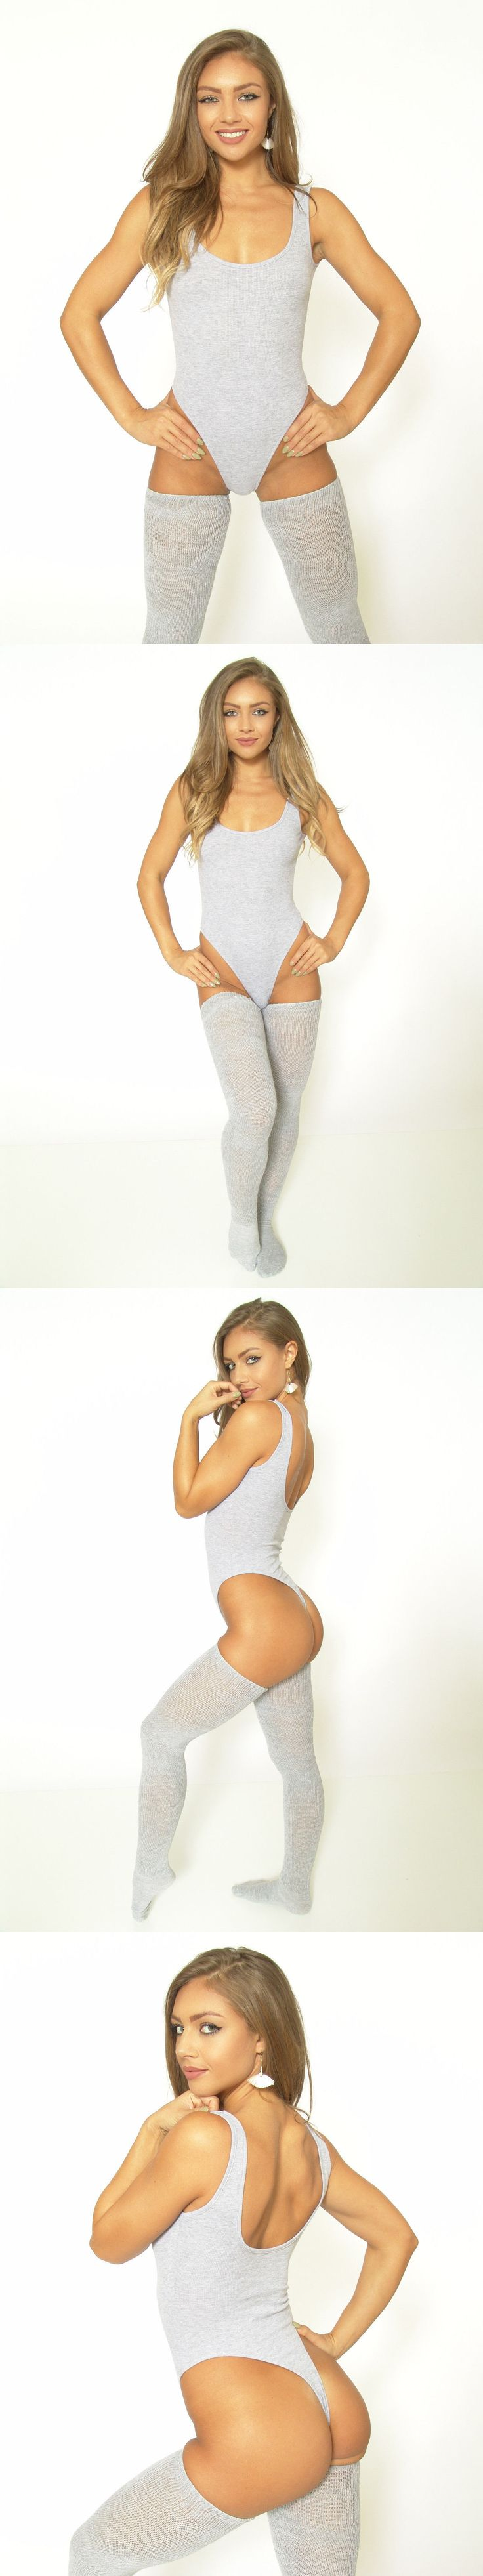 Leotards and Unitards 152365: New Gray! Teezees Rib-Knit Thong Leotard W Cotton Crotch Lining -> BUY IT NOW ONLY: $35.99 on eBay!